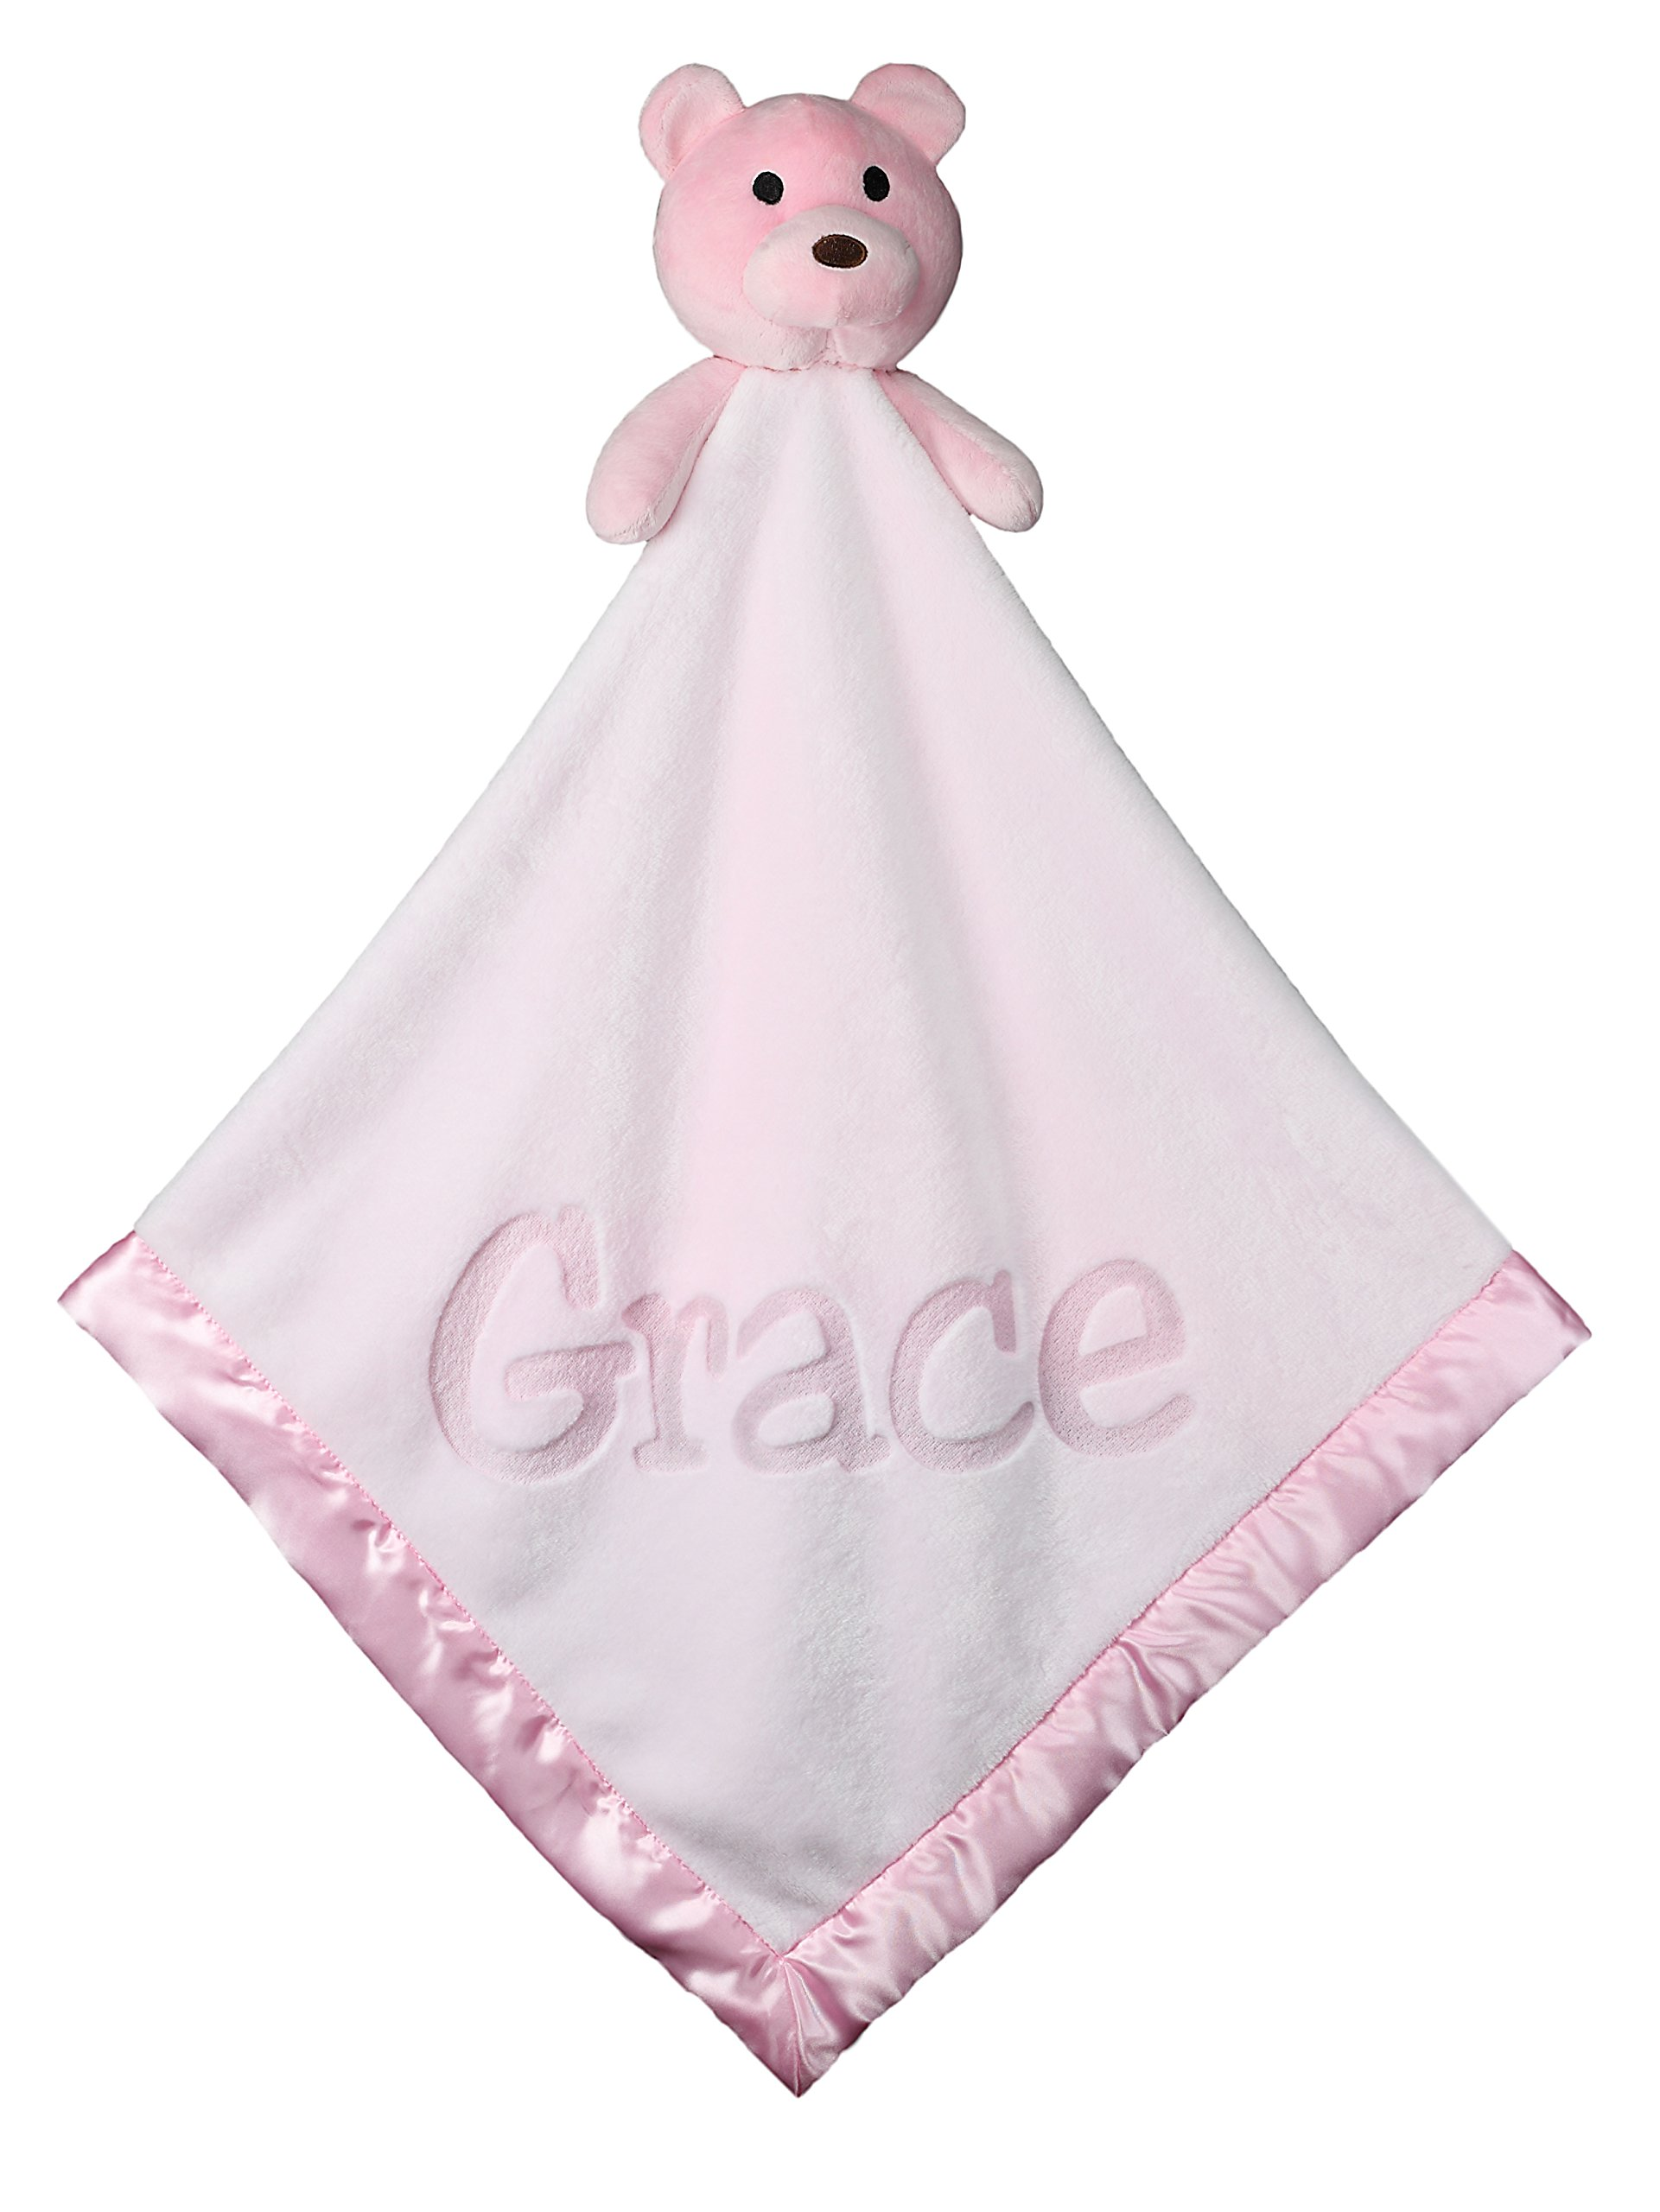 Large Ultra Plush Personalized Teddy Bear Baby Blanket Gifts, 40x40 Inch (Pink), Boy or Girl by Custom Catch